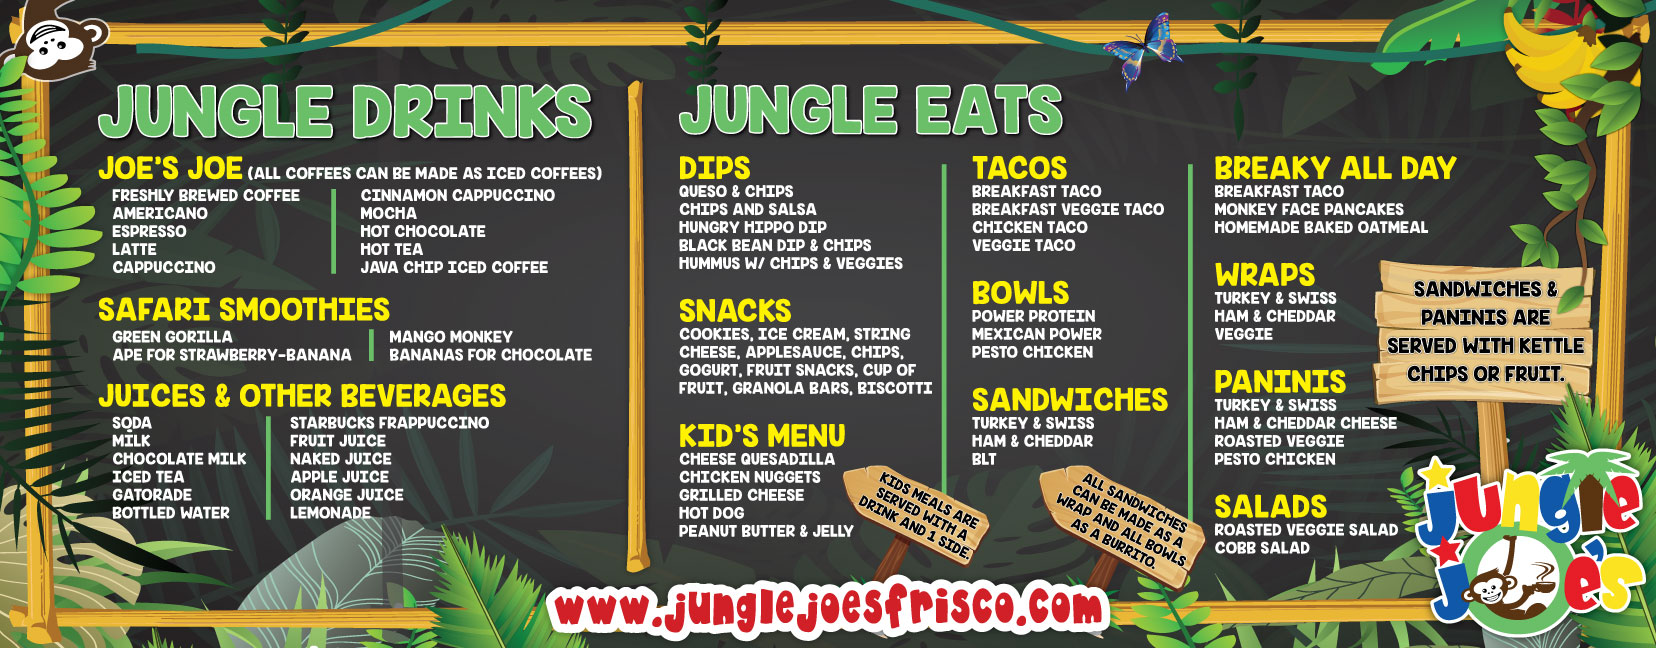 Jungle-Joes-Menu-92-X-36